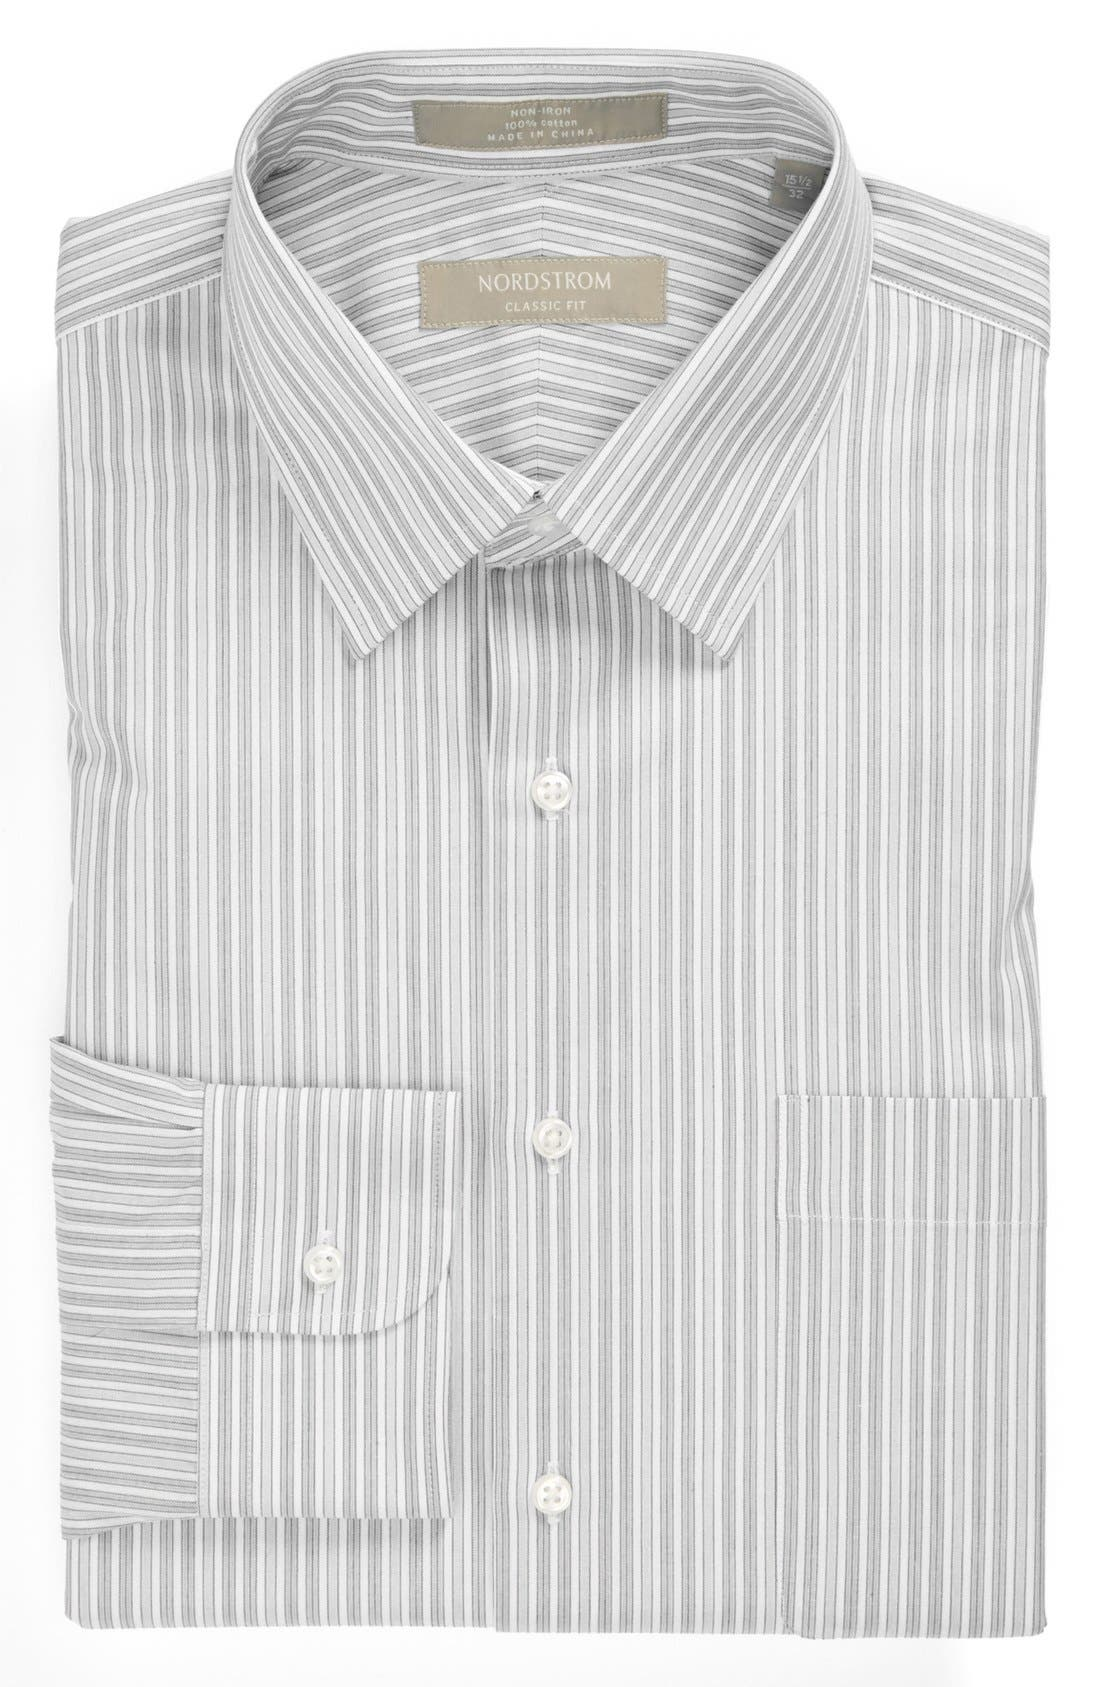 Nordstrom Classic Fit Non-Iron Dress Shirt,                         Main,                         color, 021